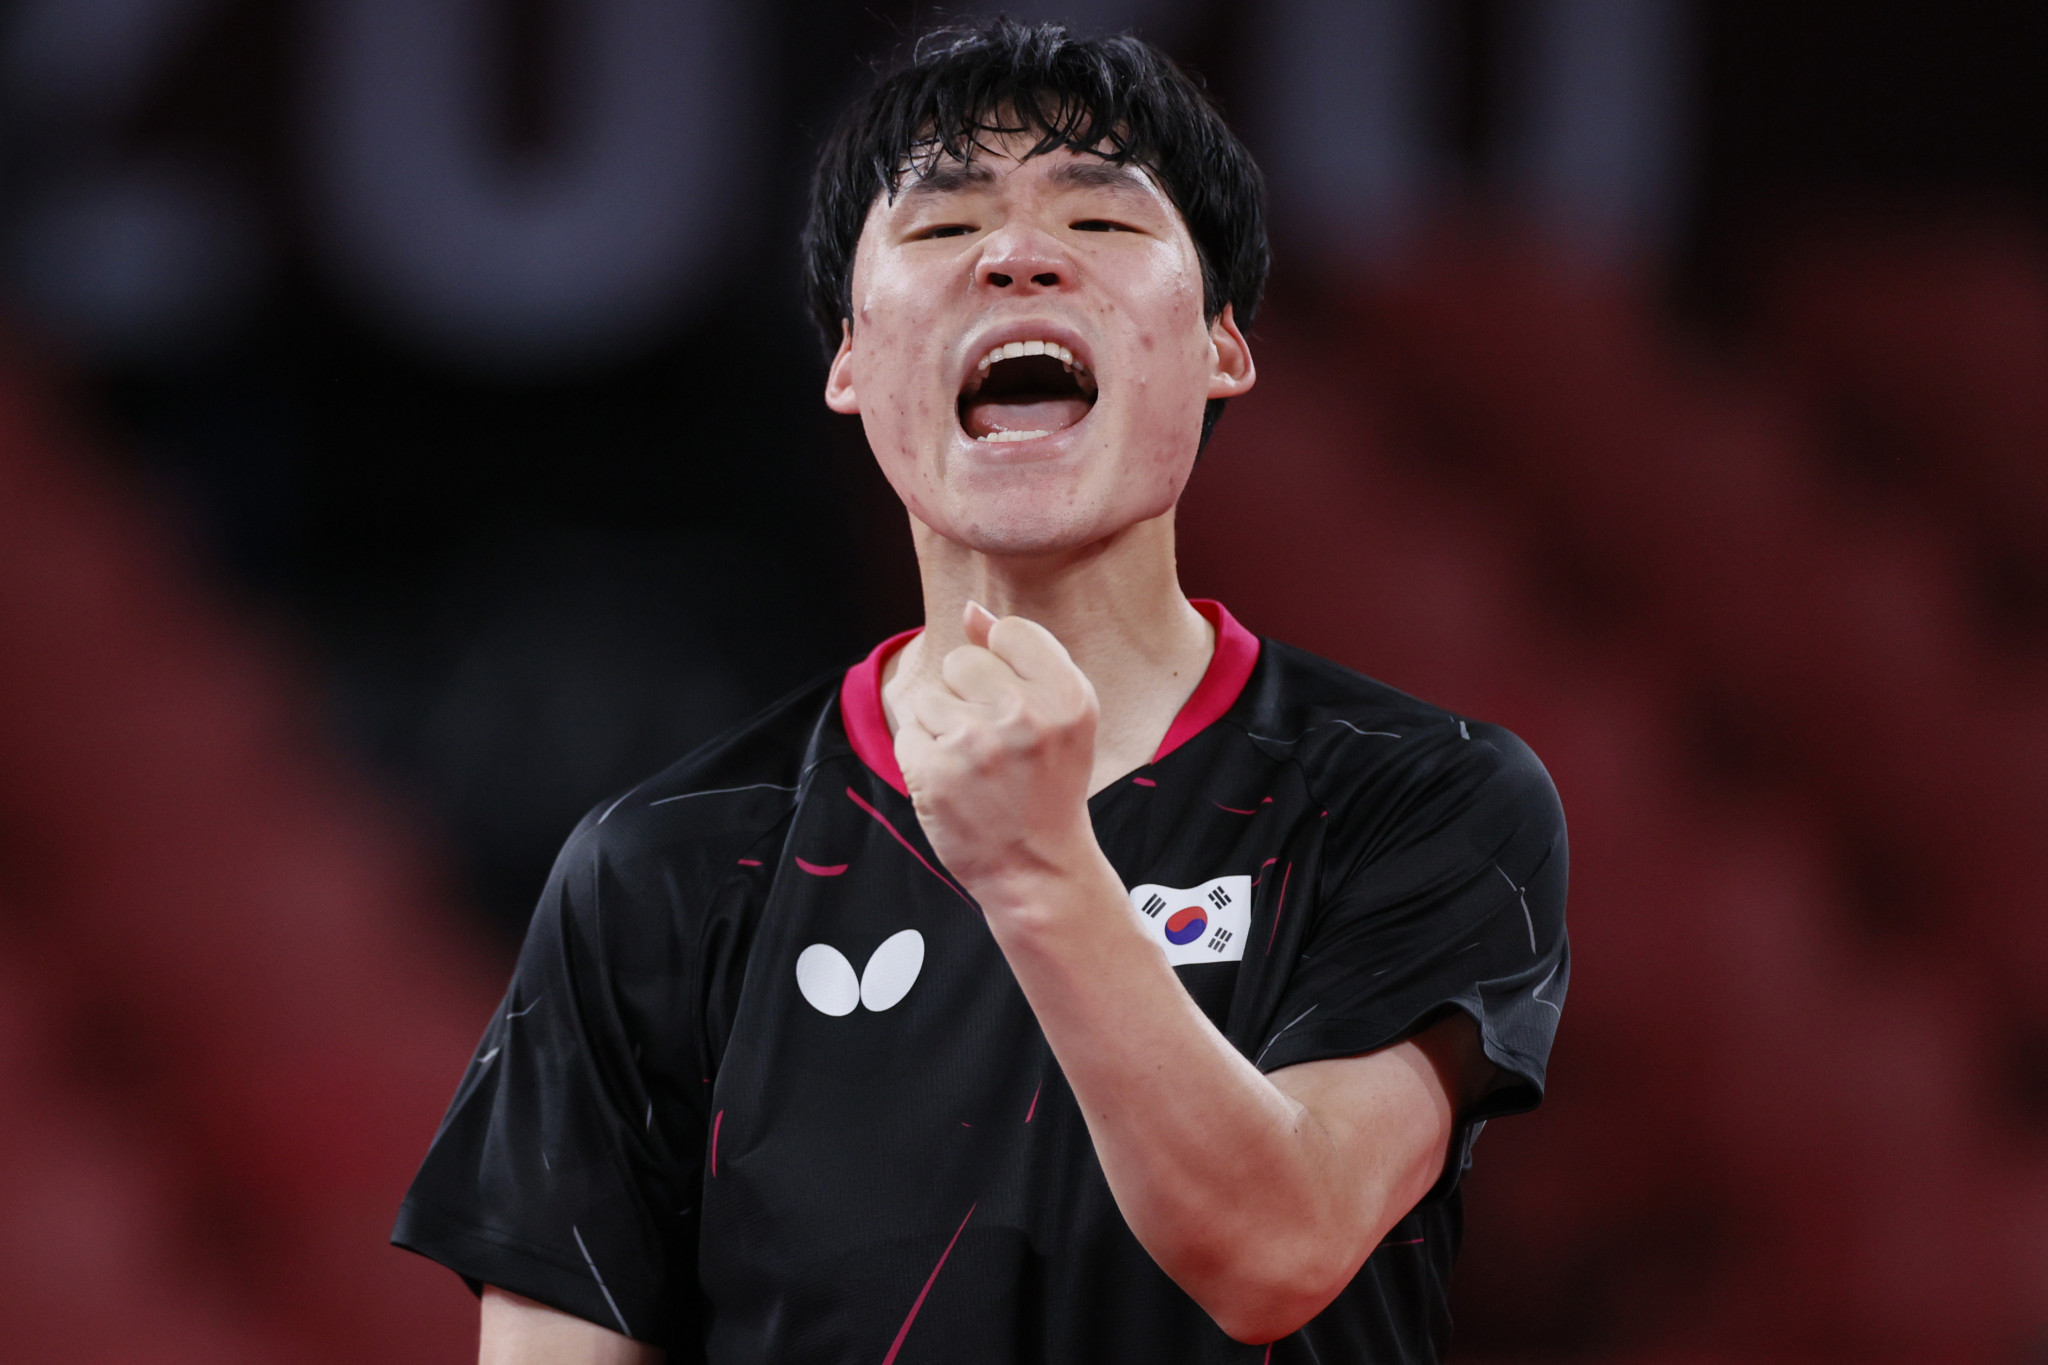 South Korean top seed Jang through to semi-finals of Asian Table Tennis Championships